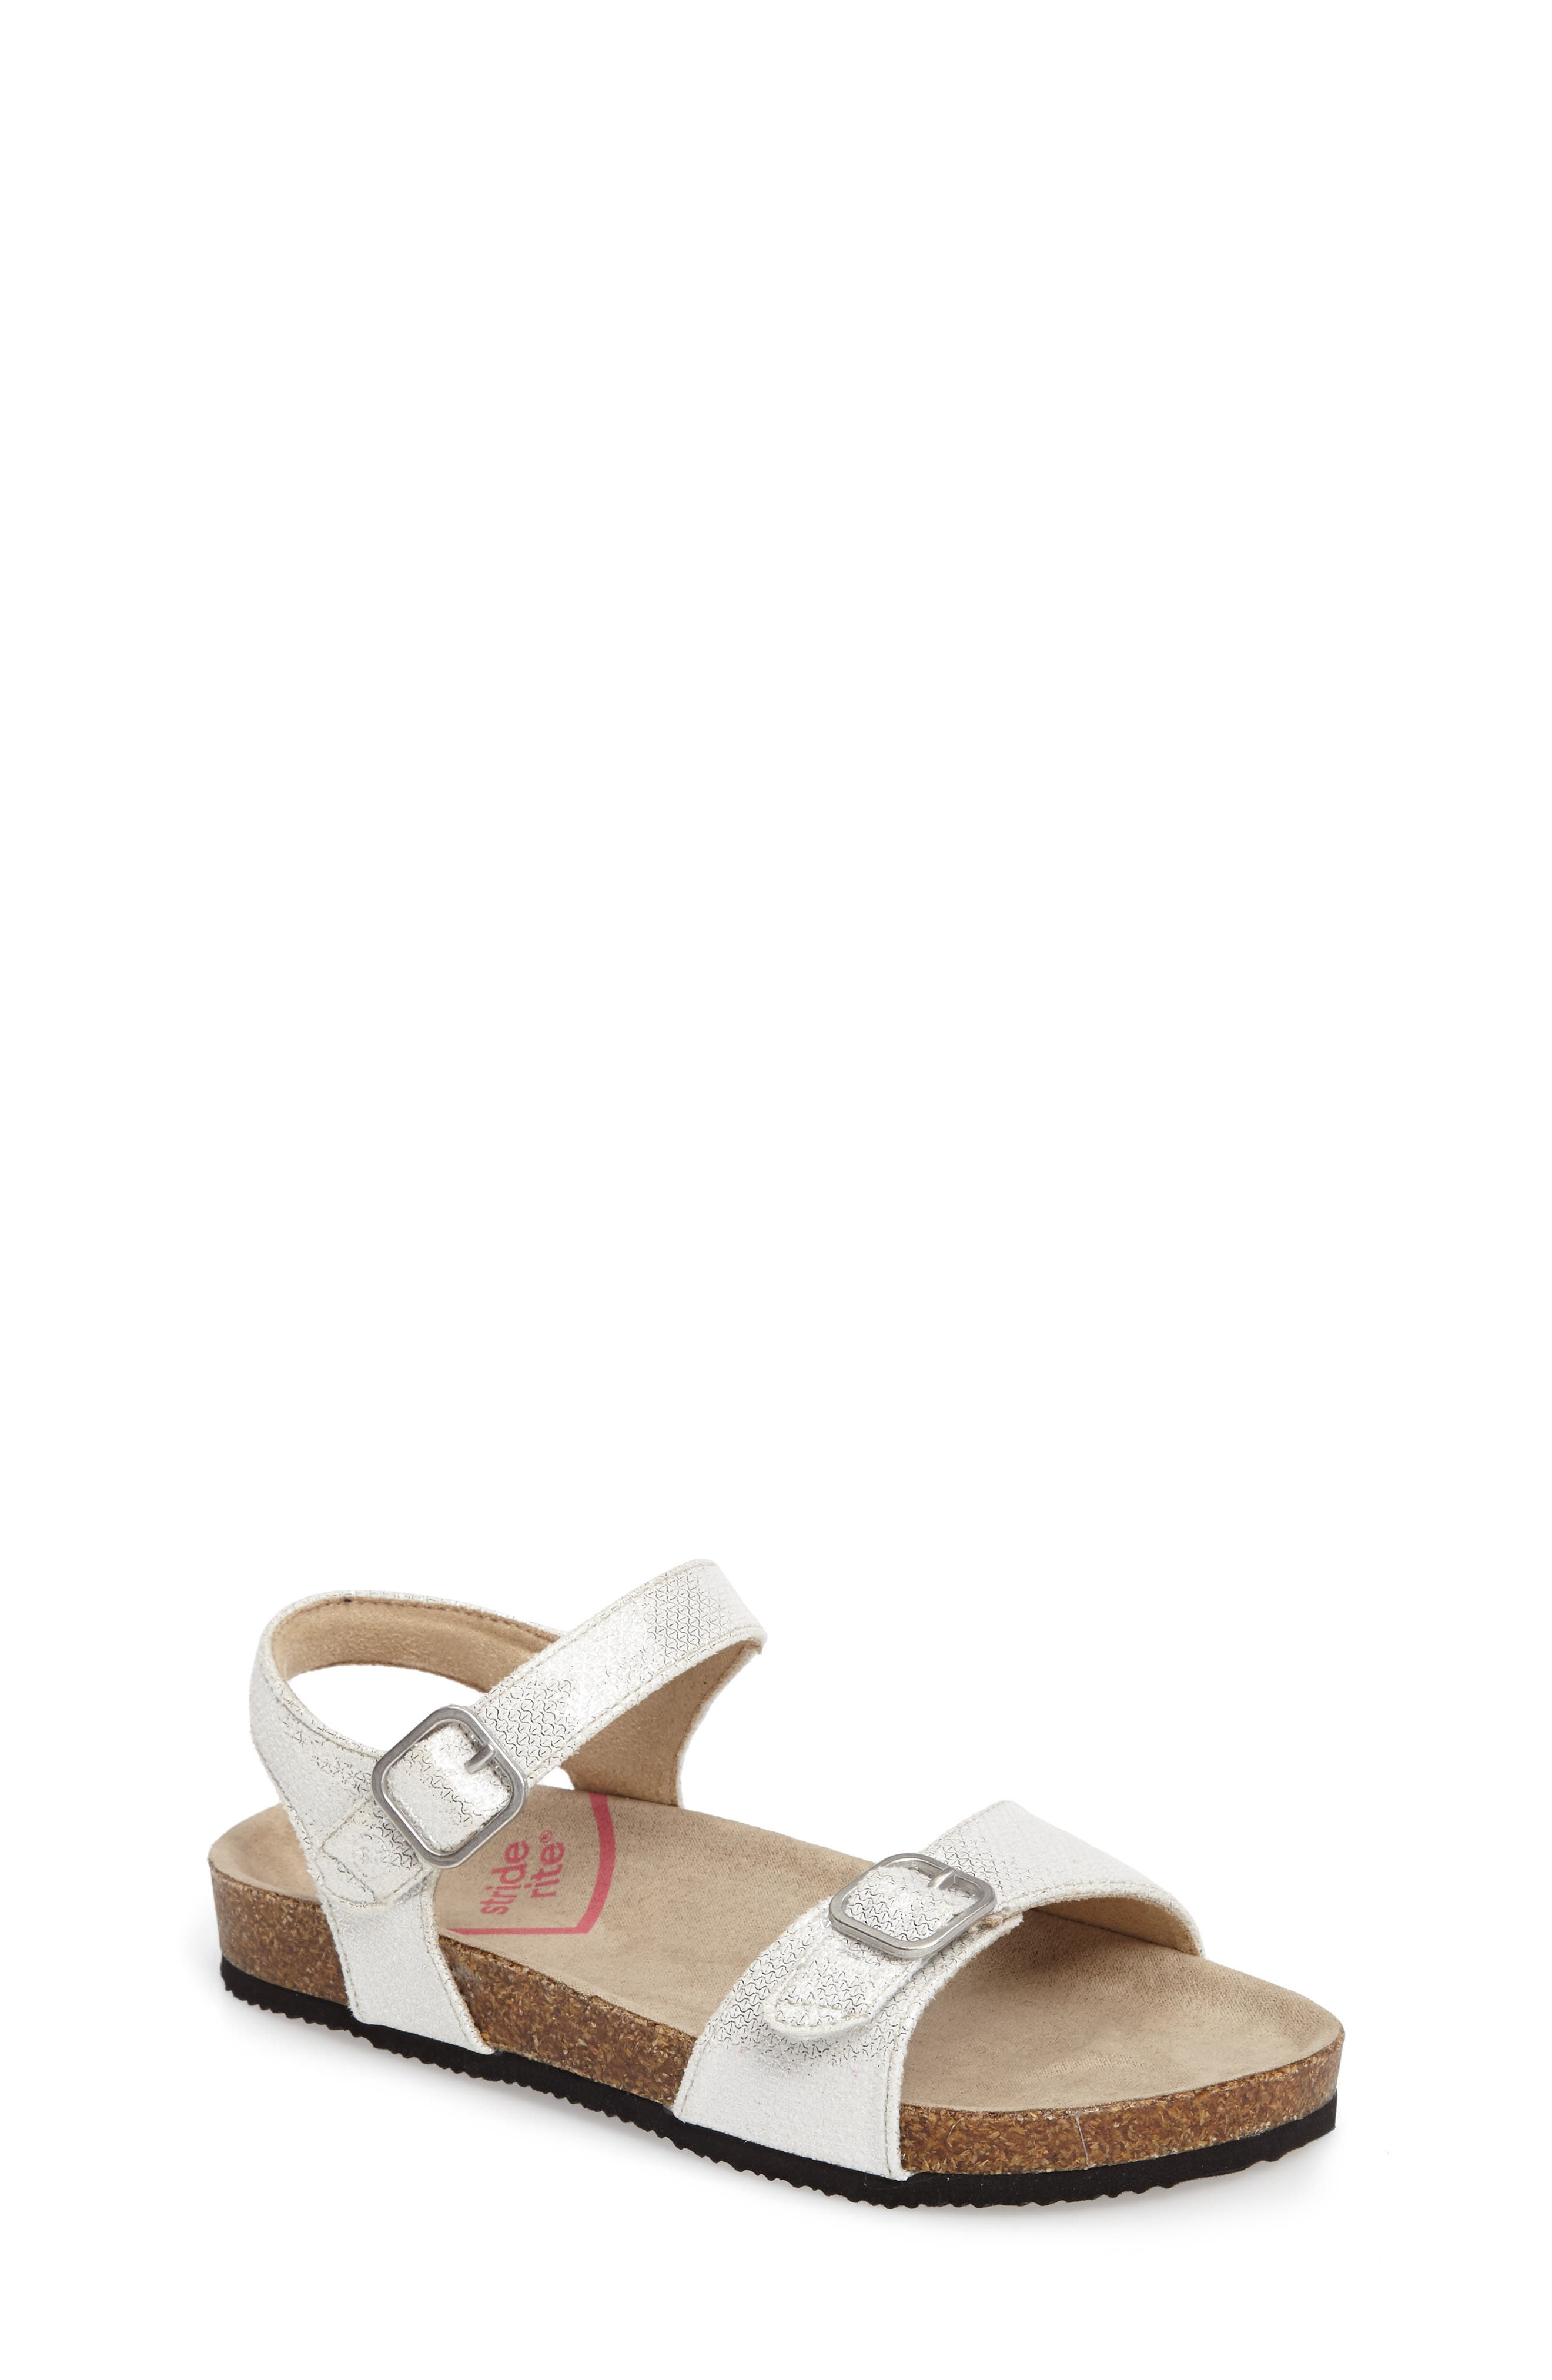 Stride Rite Zuly Sandal (Baby, Walker, Toddler & Little Kid)